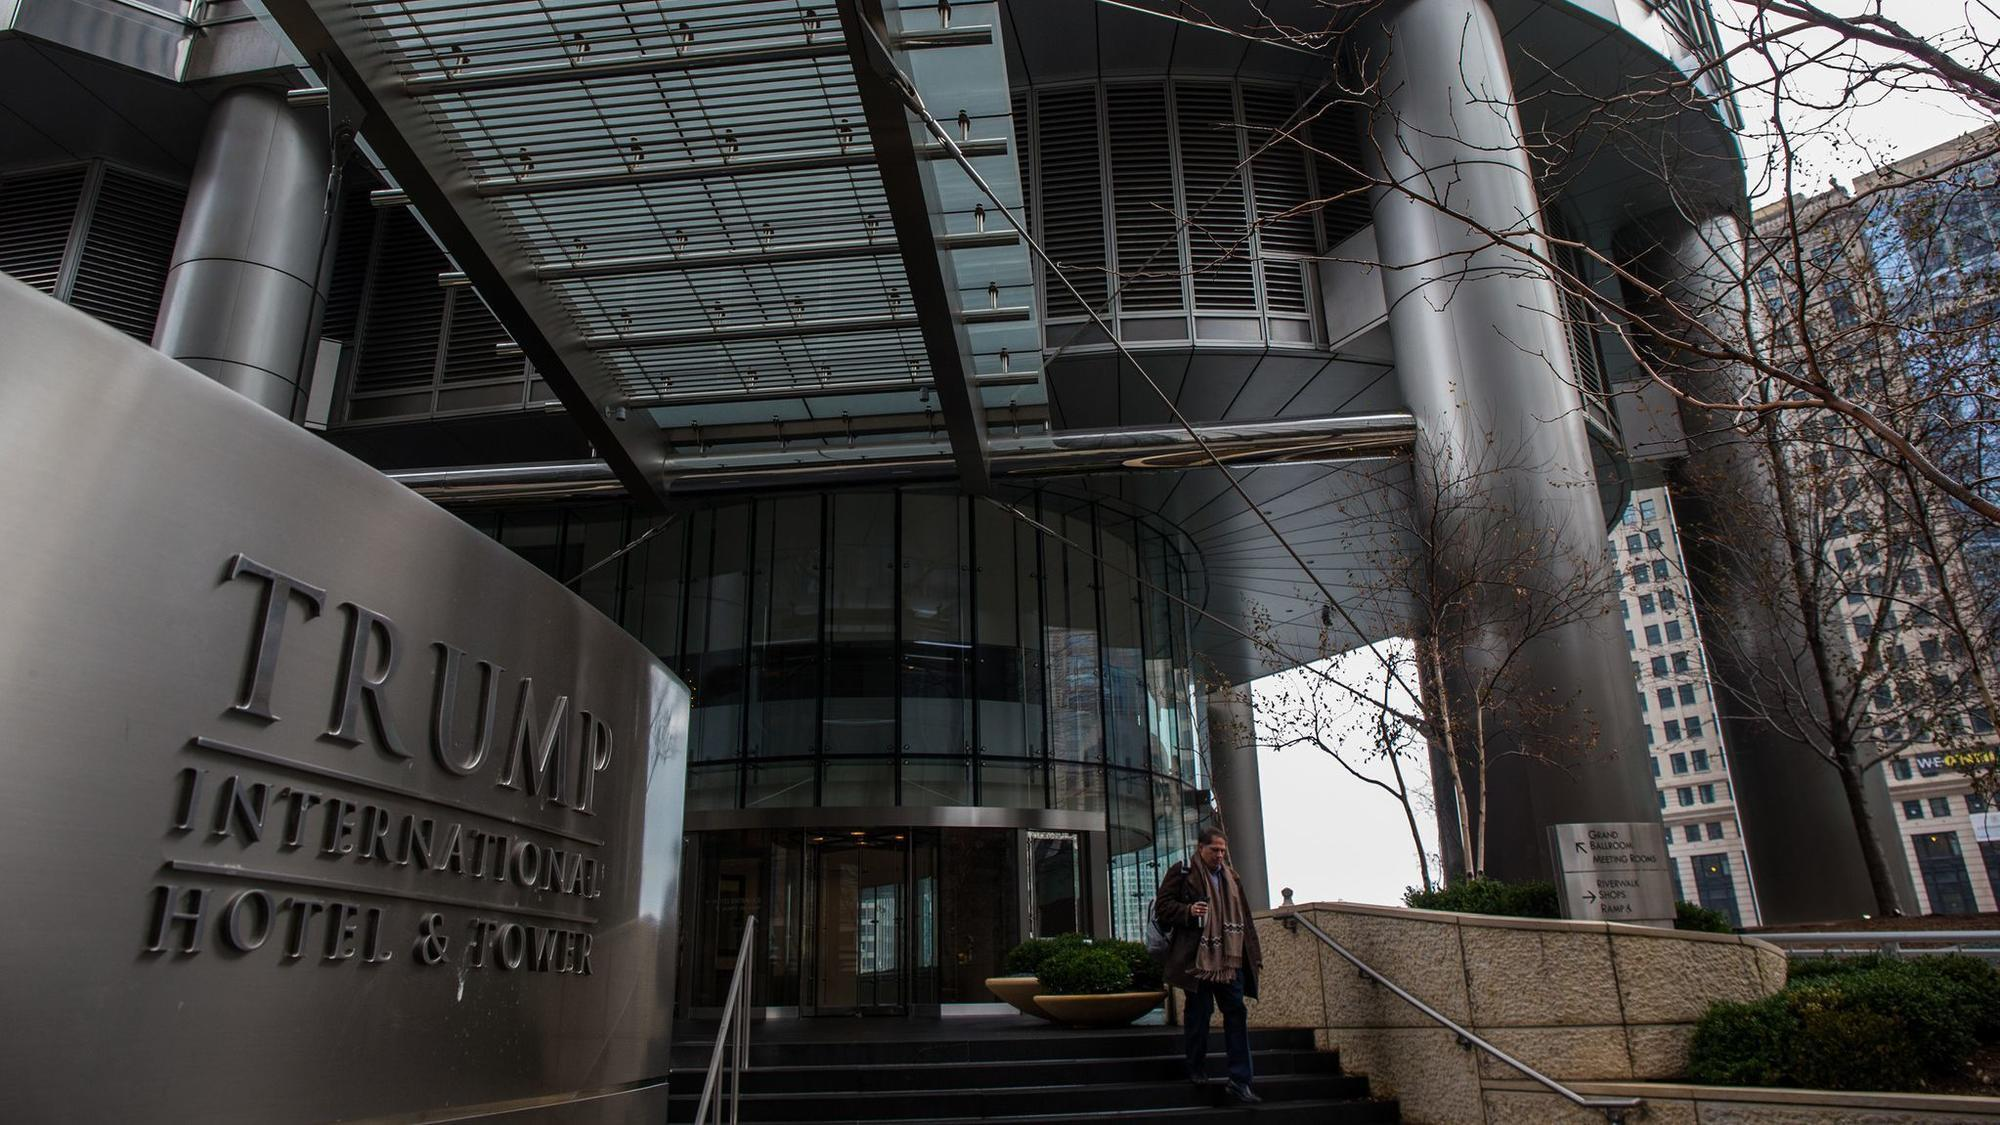 Police find no evidence of women being held hostage at R. Kelly's Trump Tower residence